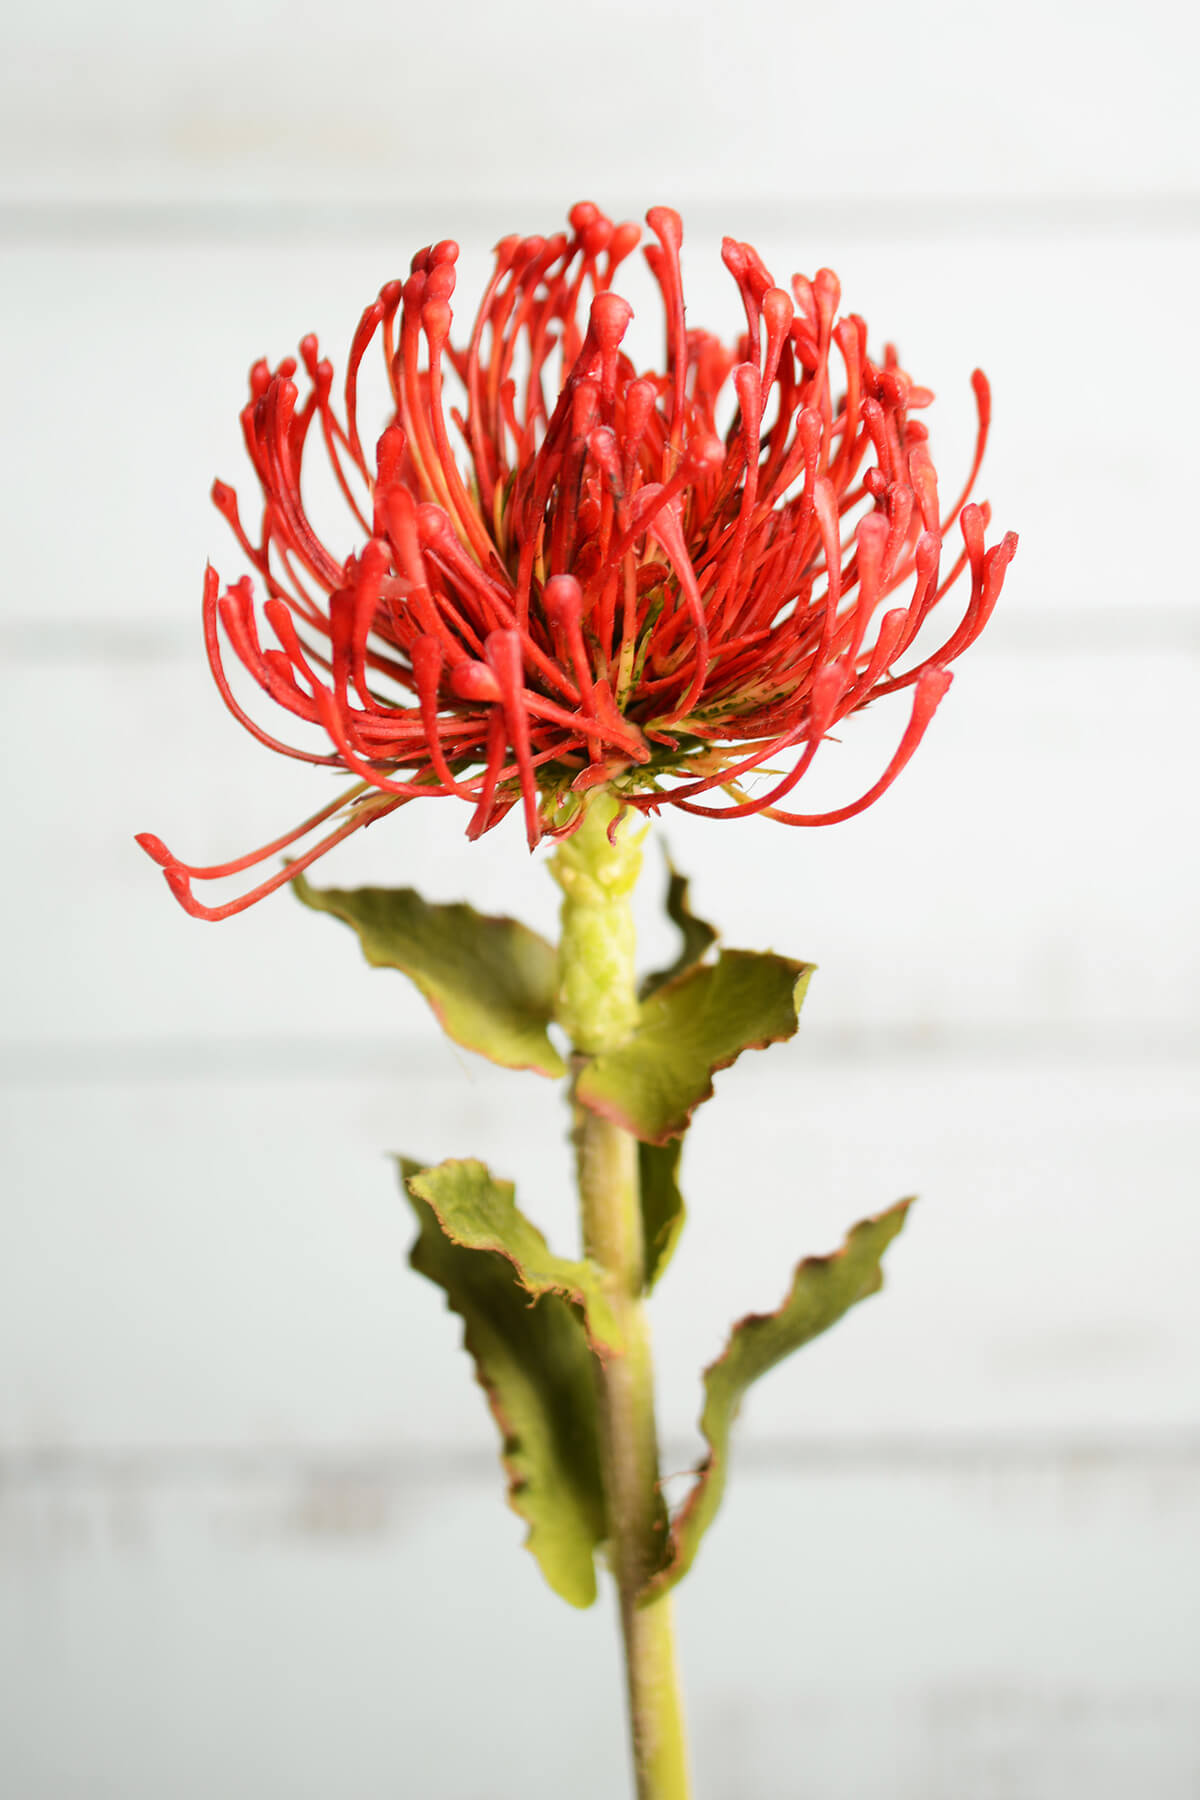 Tropical Flower On Koh Samui Thailand: Artificial Protea Flower Red & Orange